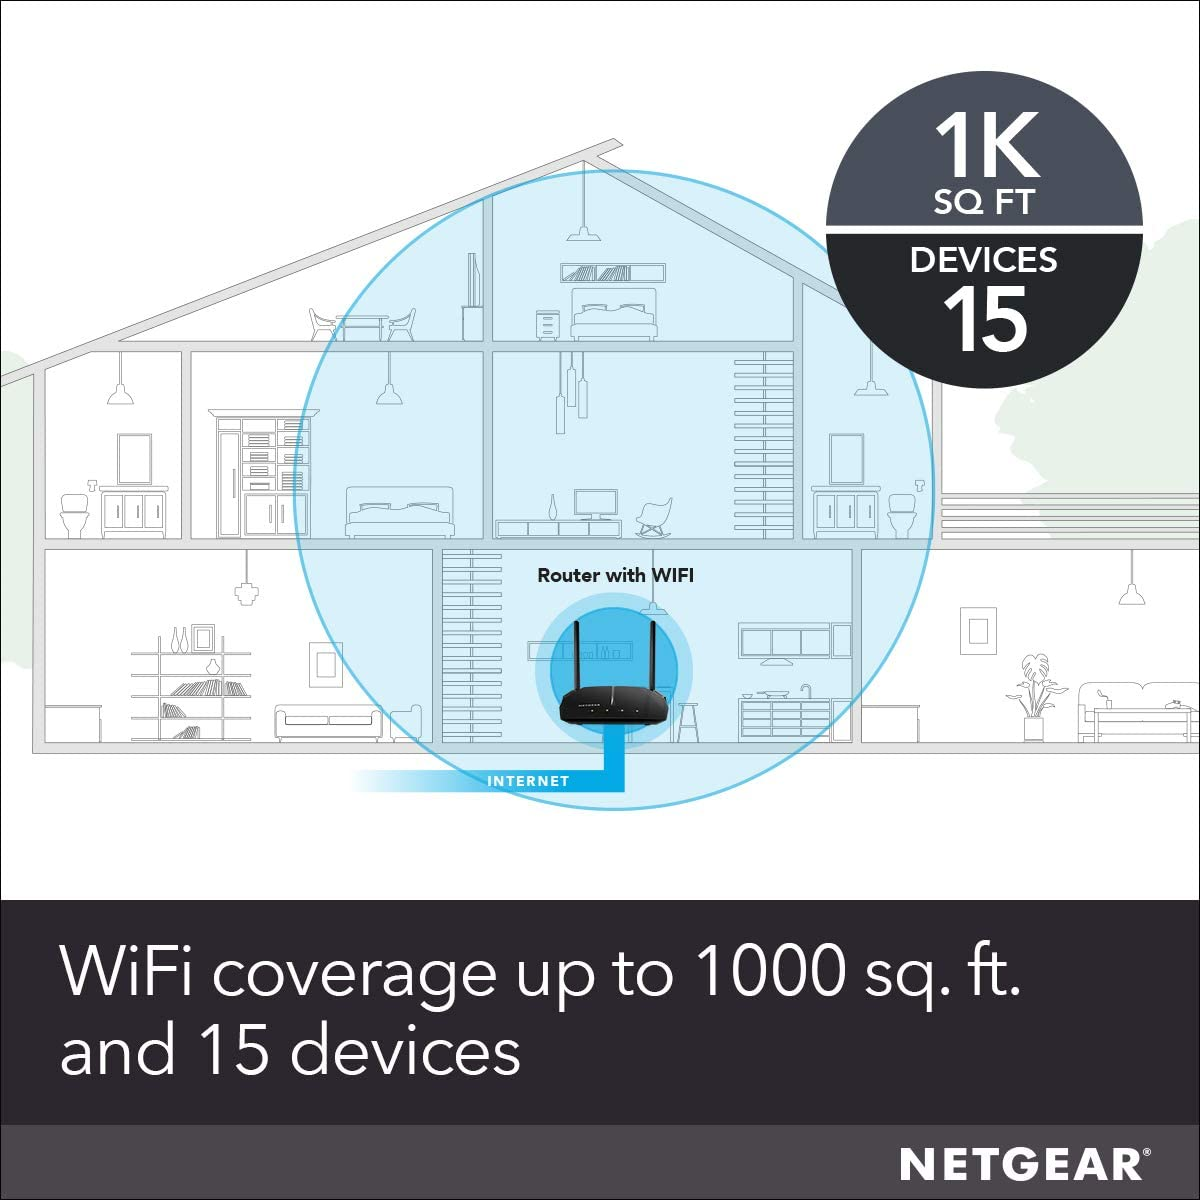 NETGEAR WiFi Router (R6080) – AC1000 Dual Band Wireless Speed (up to 1000 Mbps) | Up to 1000 sq ft Coverage & 15 devices | 4 x 10/100 Fast Ethernet ports